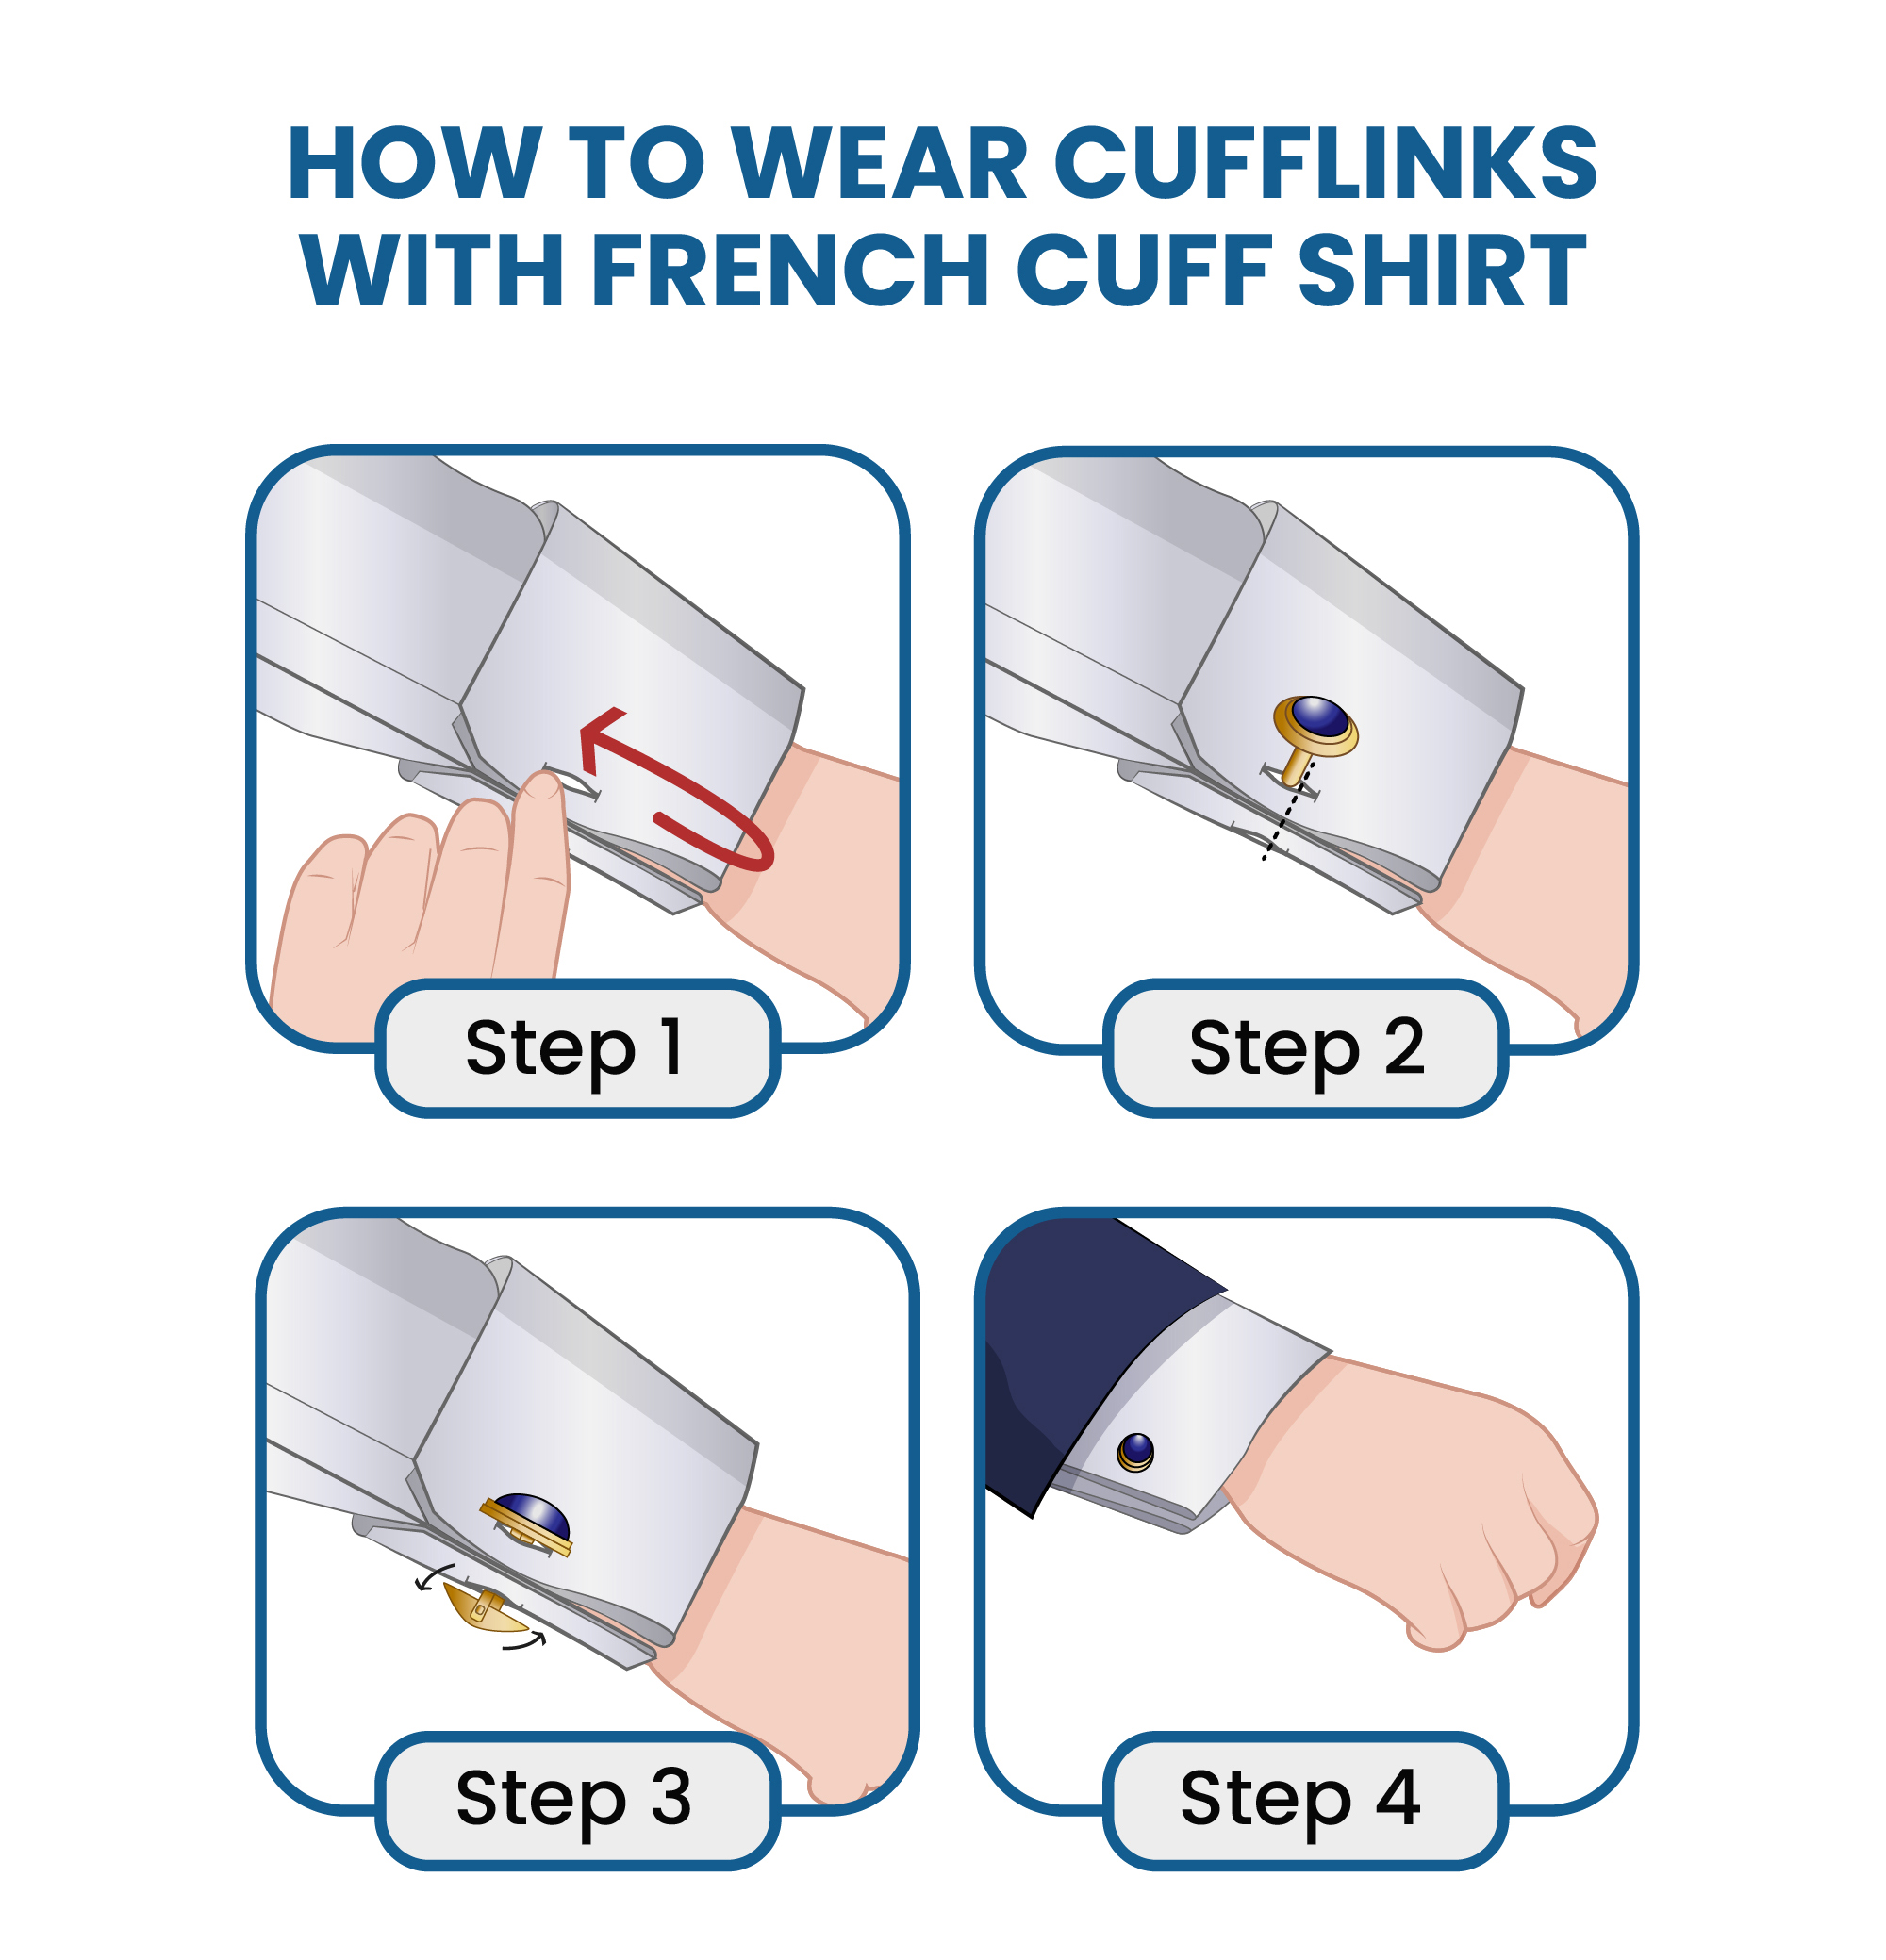 How to wear cufflinks with a French cuff shirt